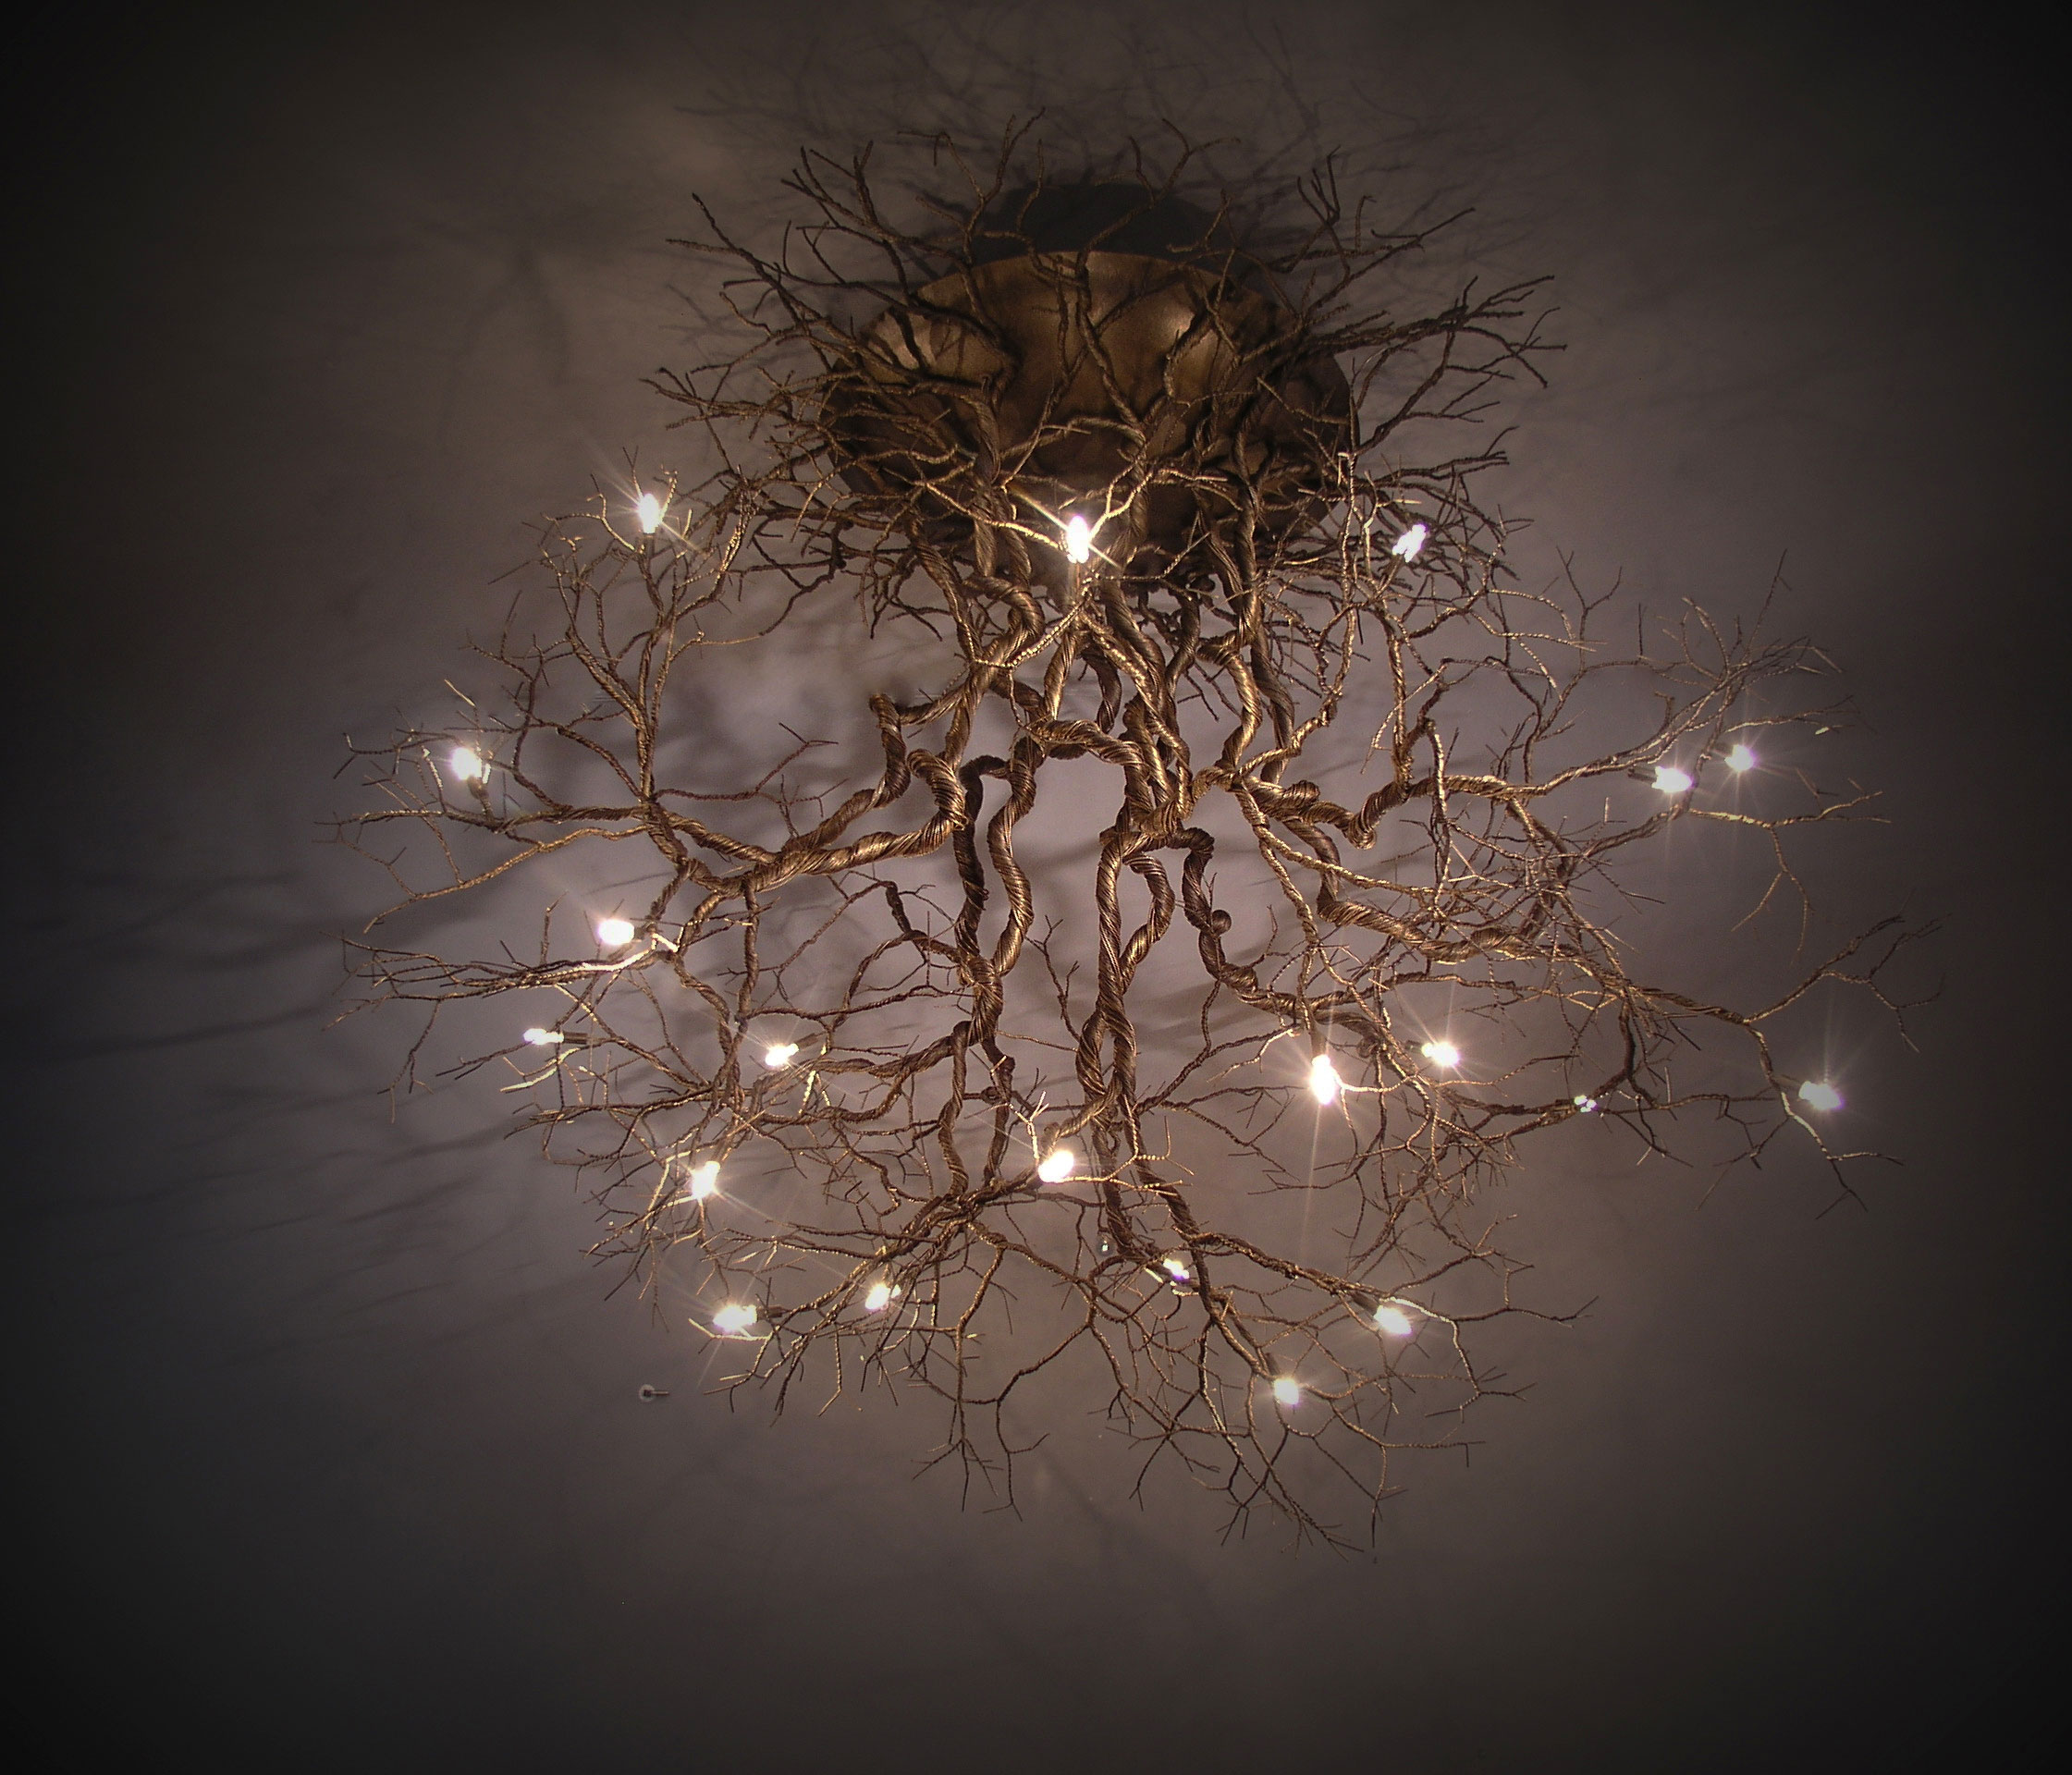 Roots Large - Ceiling Light fixture